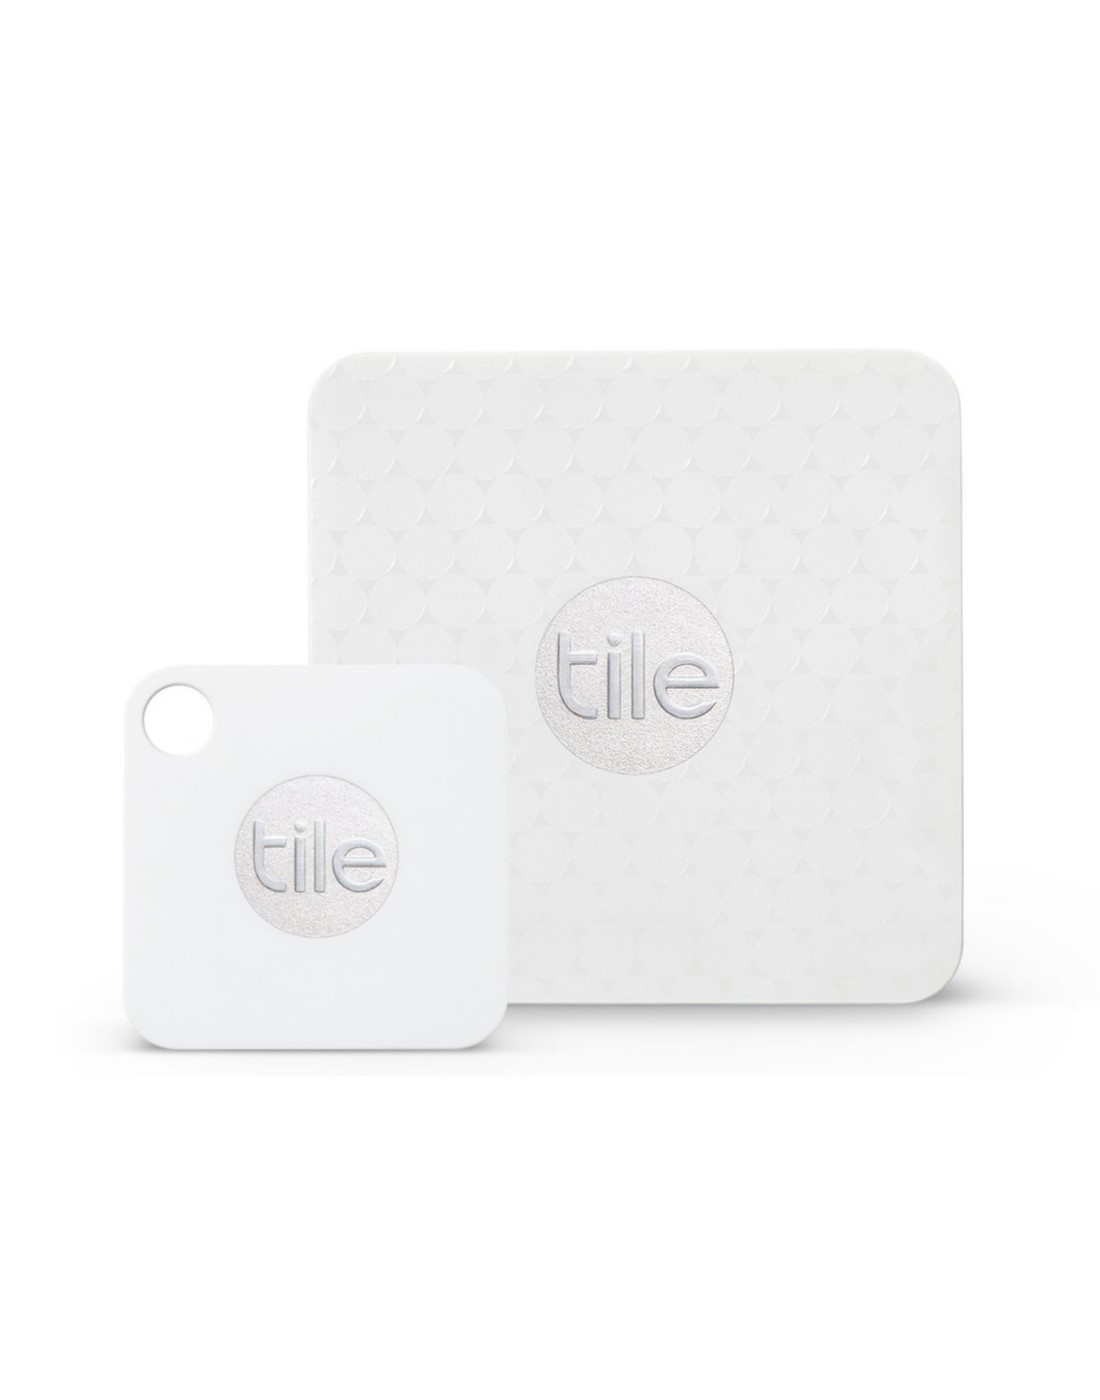 tile mate + slim